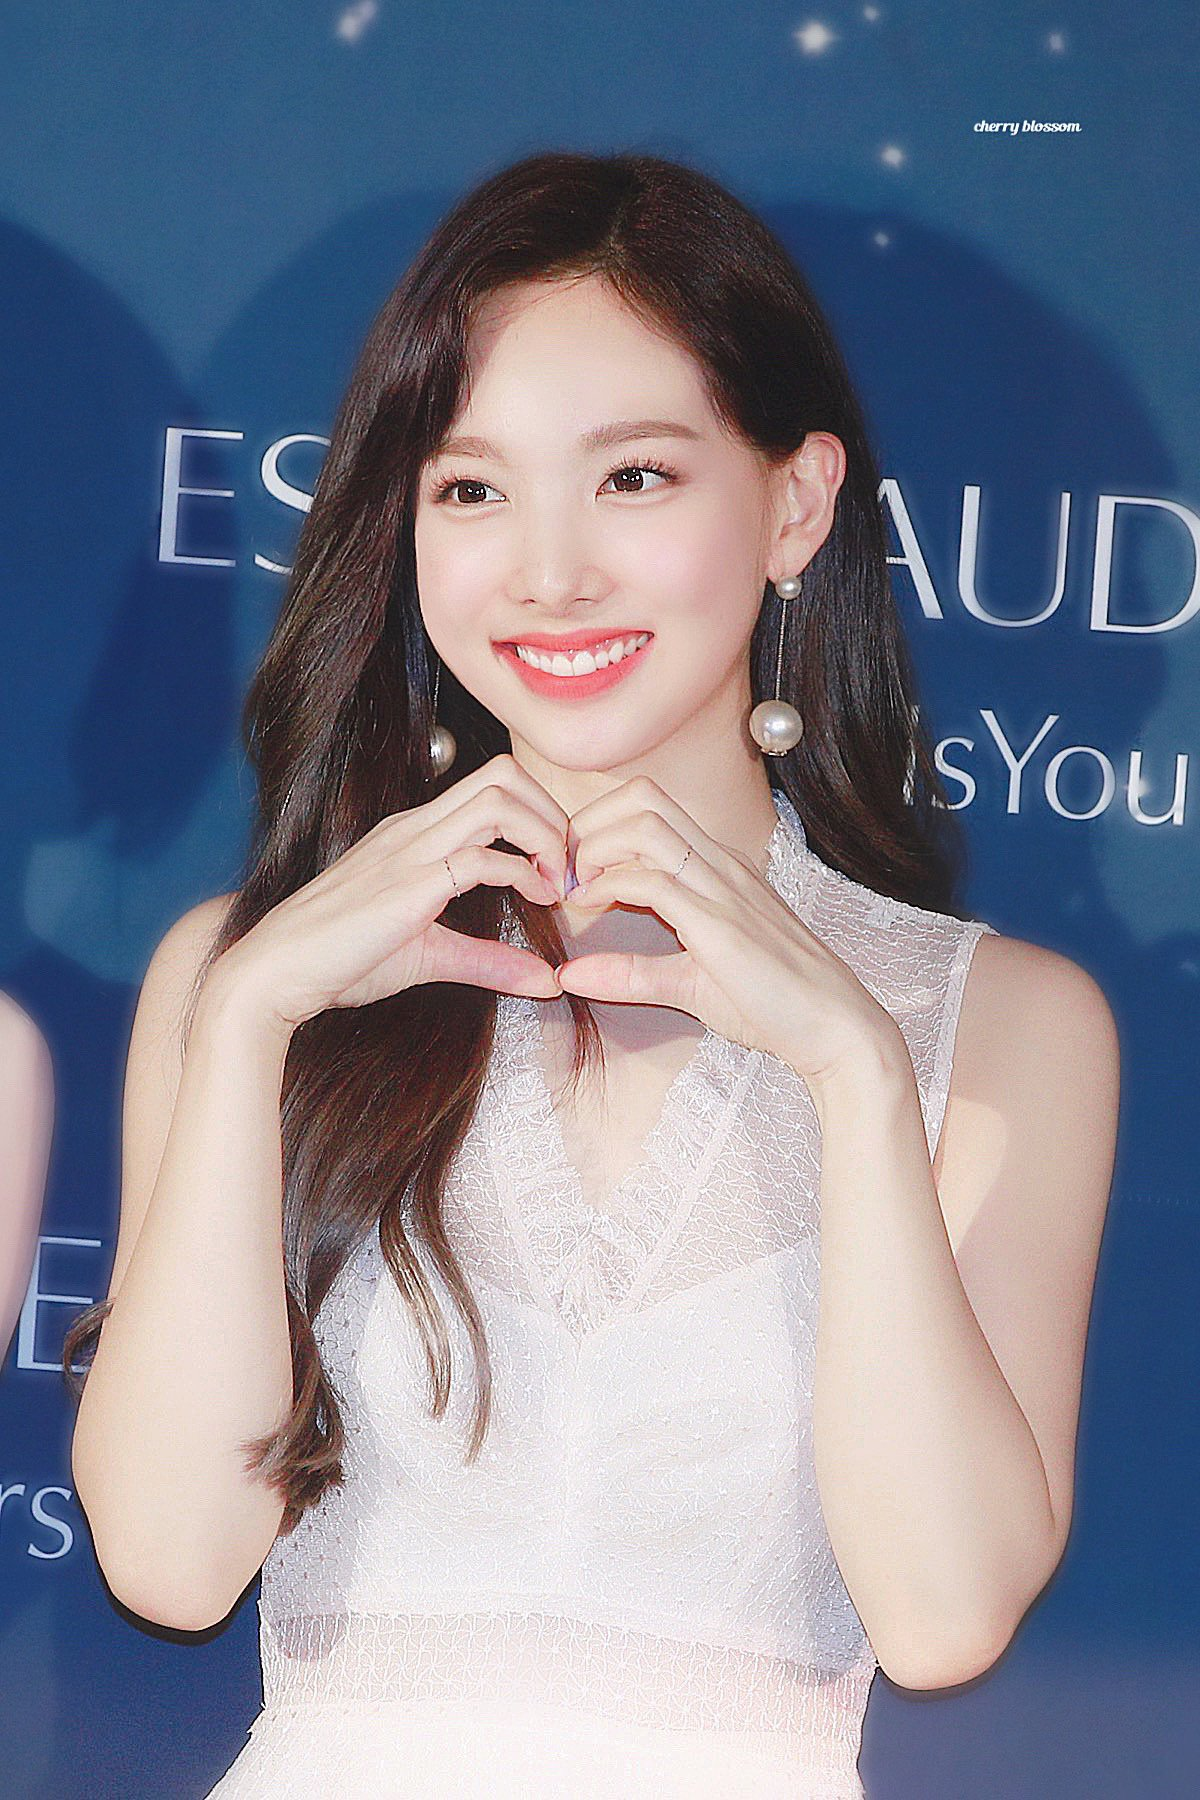 Twice S Nayeon Reveals The Members She Has Special Bonds With